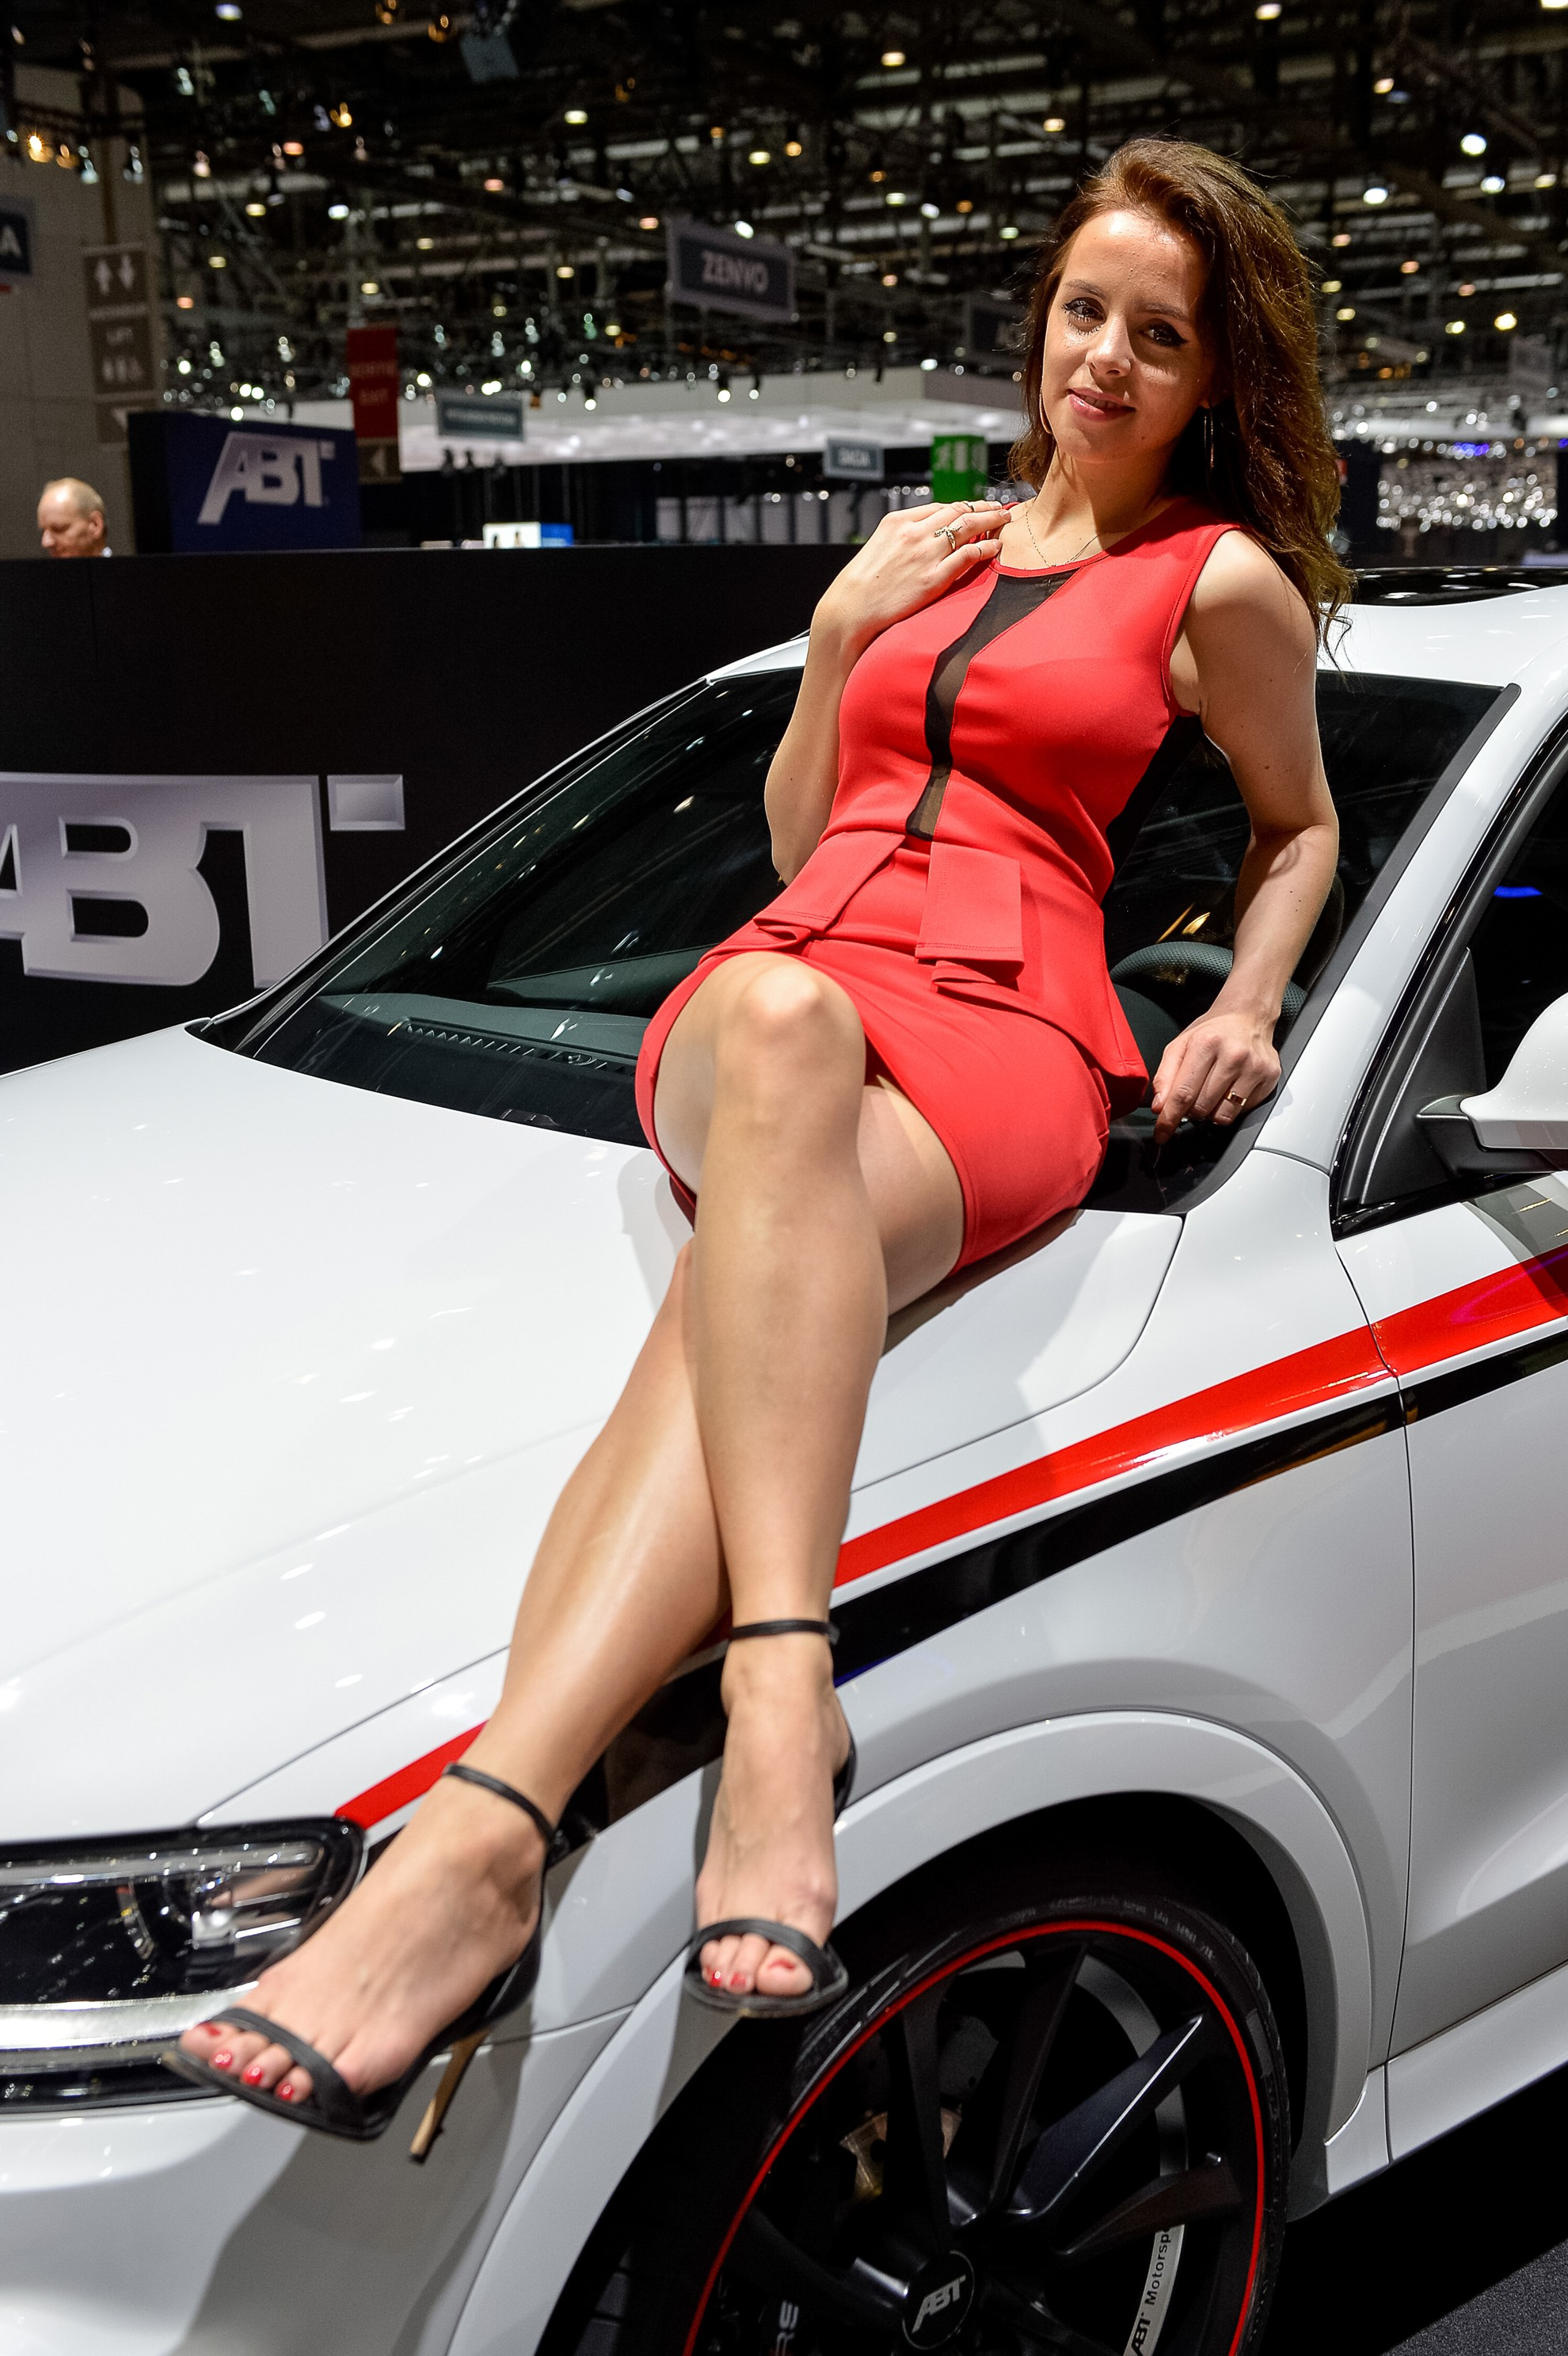 Car shows with nude women